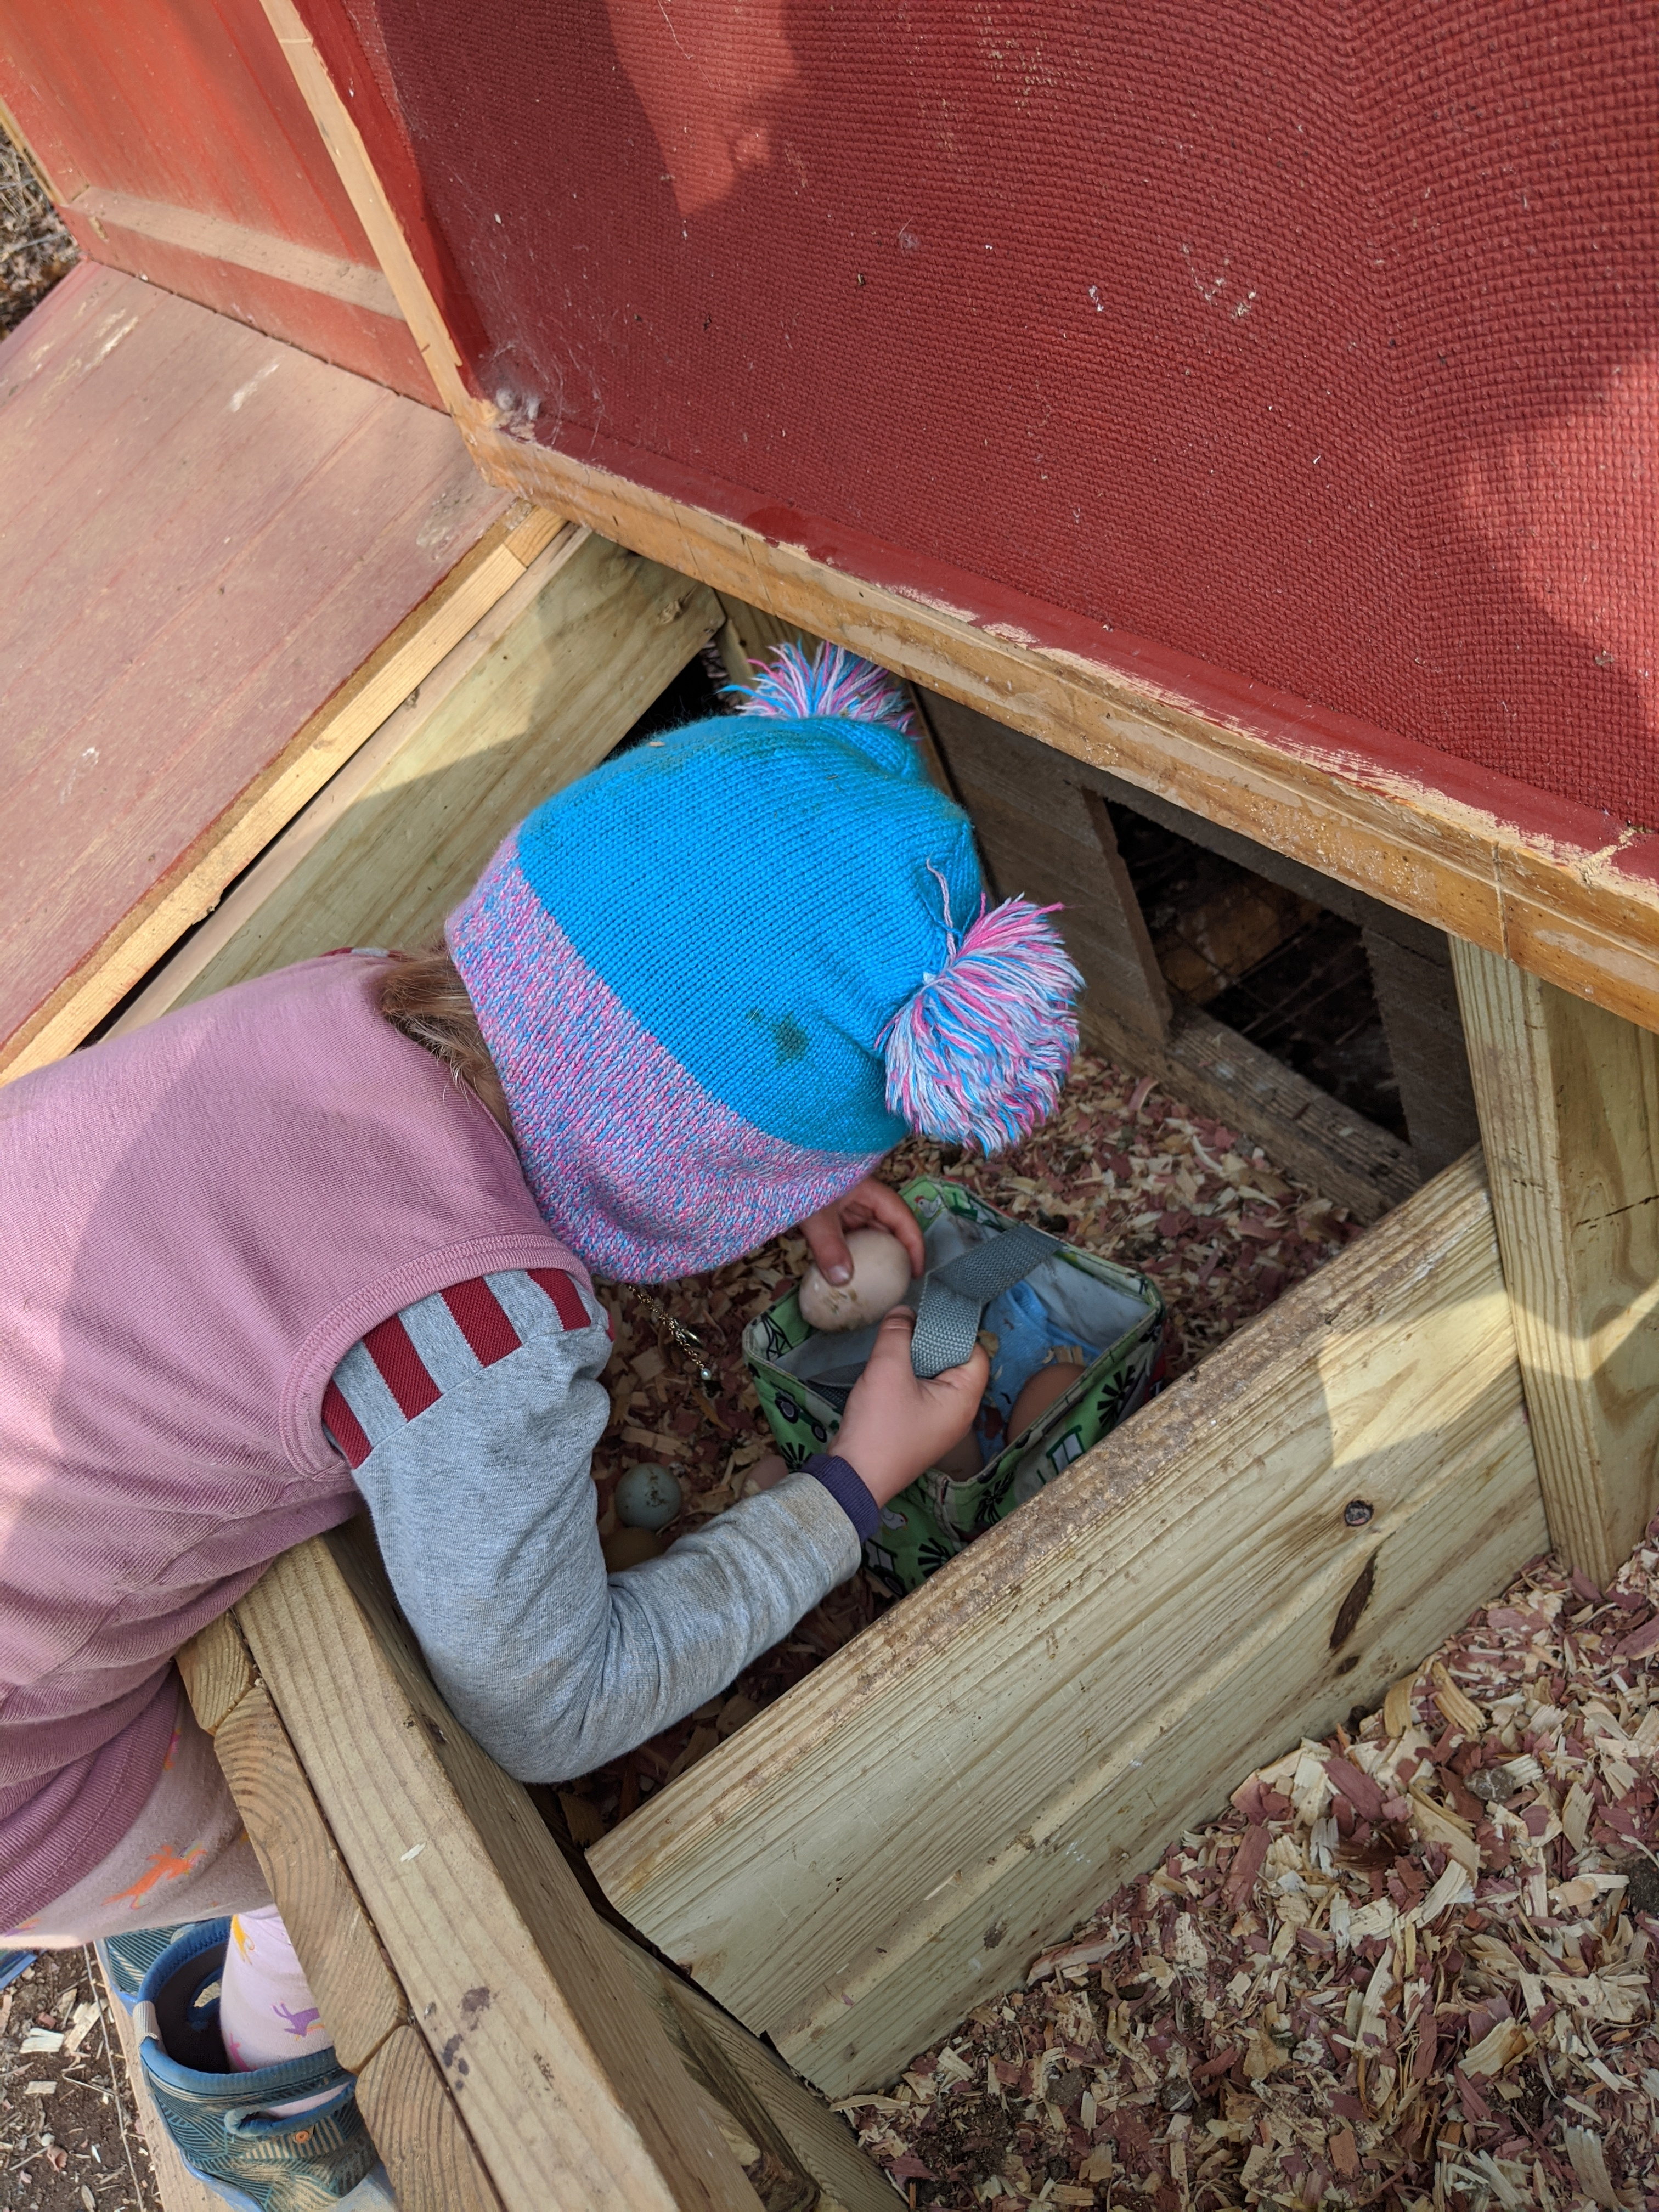 ashevillefarmstead-littlestlearners-chickenchores-eggs-eggcollection-helping